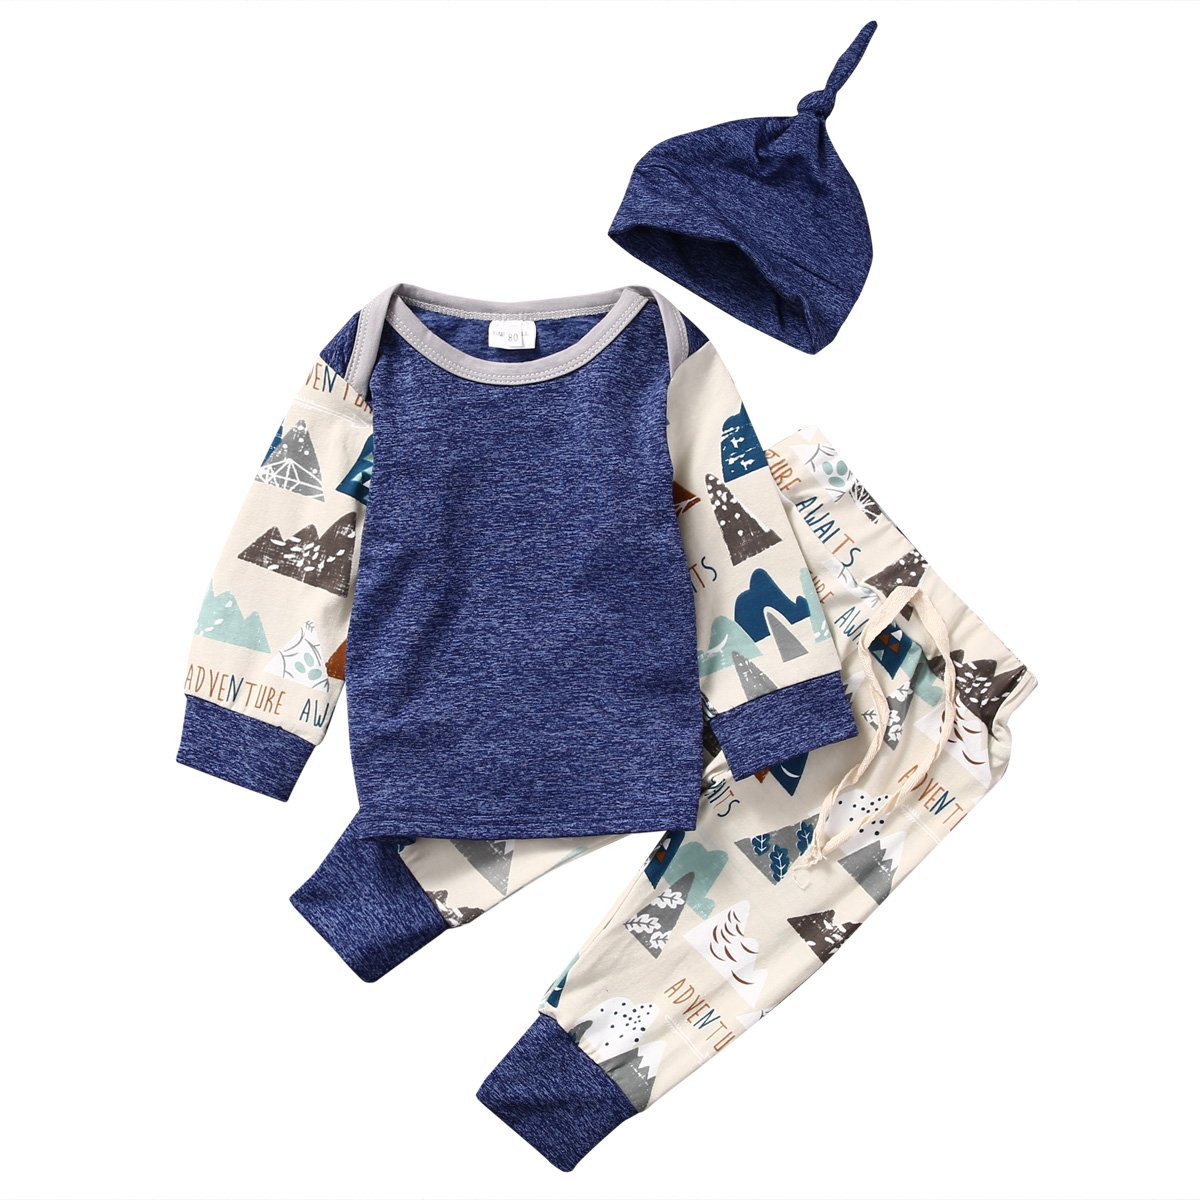 honeys Baby Boy Girl 3pcs Set Mountain Pattern Suit Long Sleeve Top+Pants+Hat